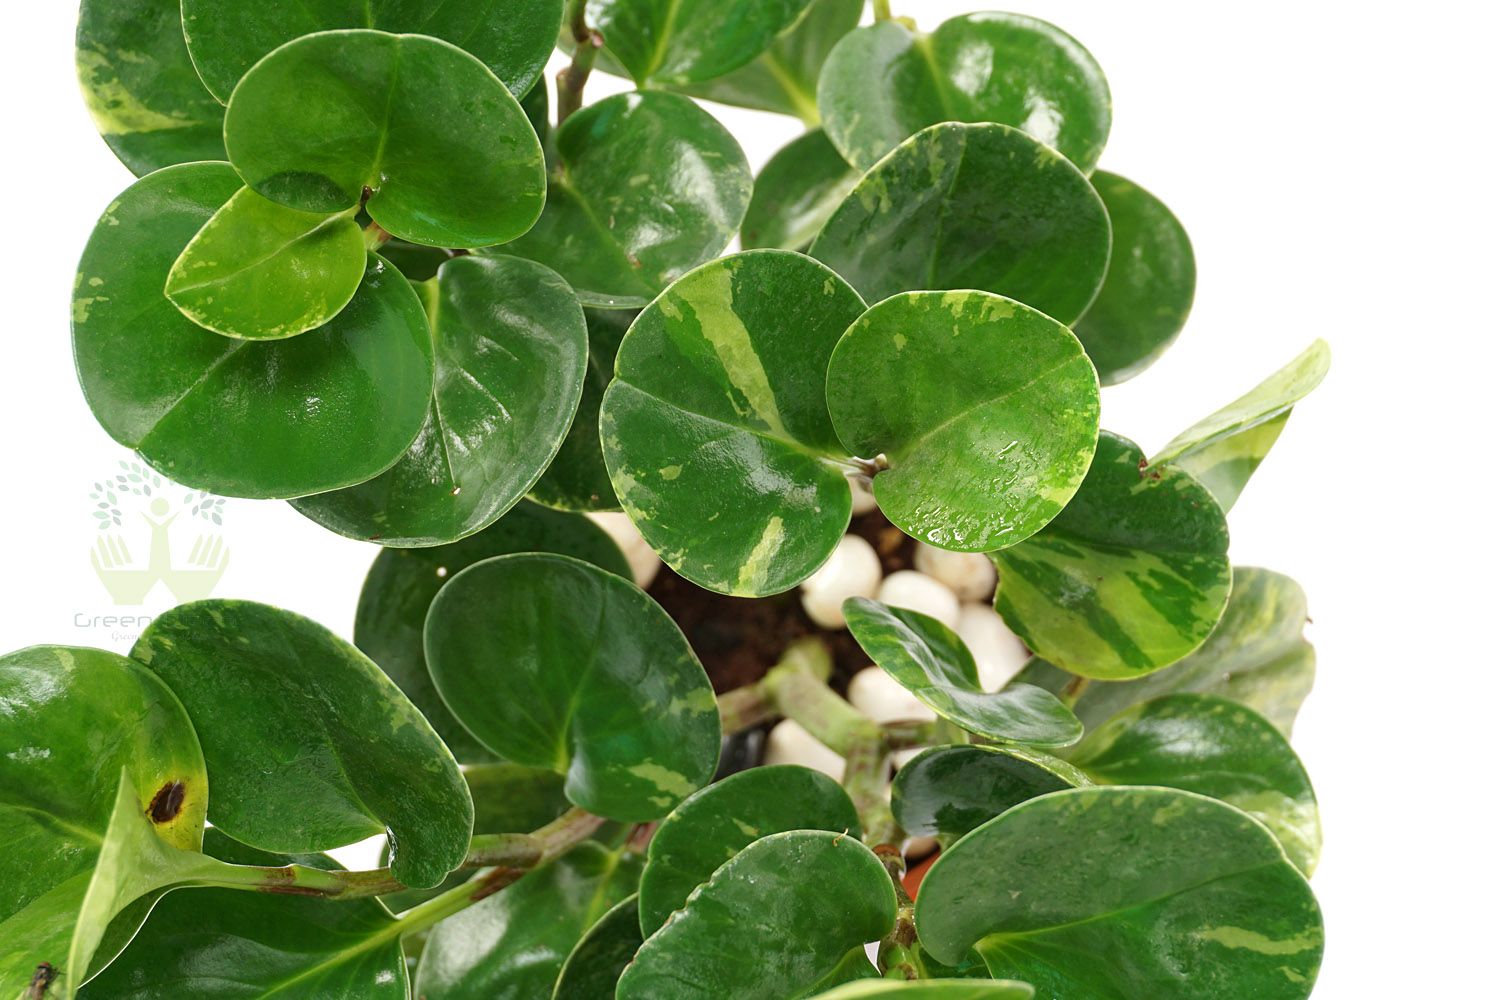 Buy Peperomia obra Plant Leaves View, White Pots and Seeds in Delhi NCR by the best online nursery shop Greendecor.